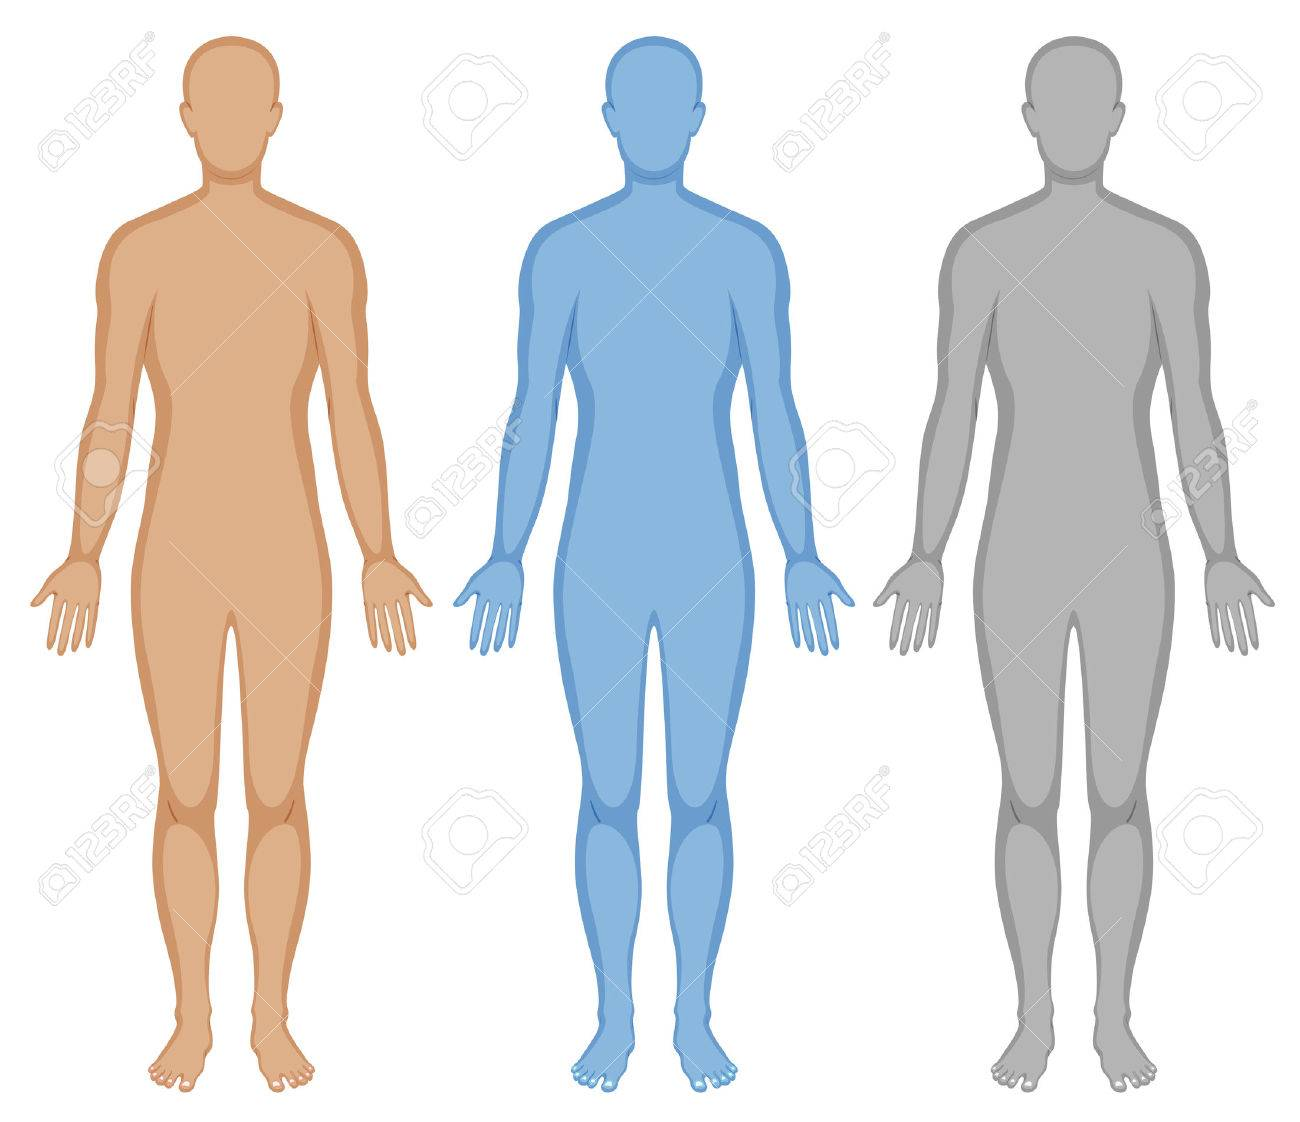 Human body outline in three colors illustration - 59930155